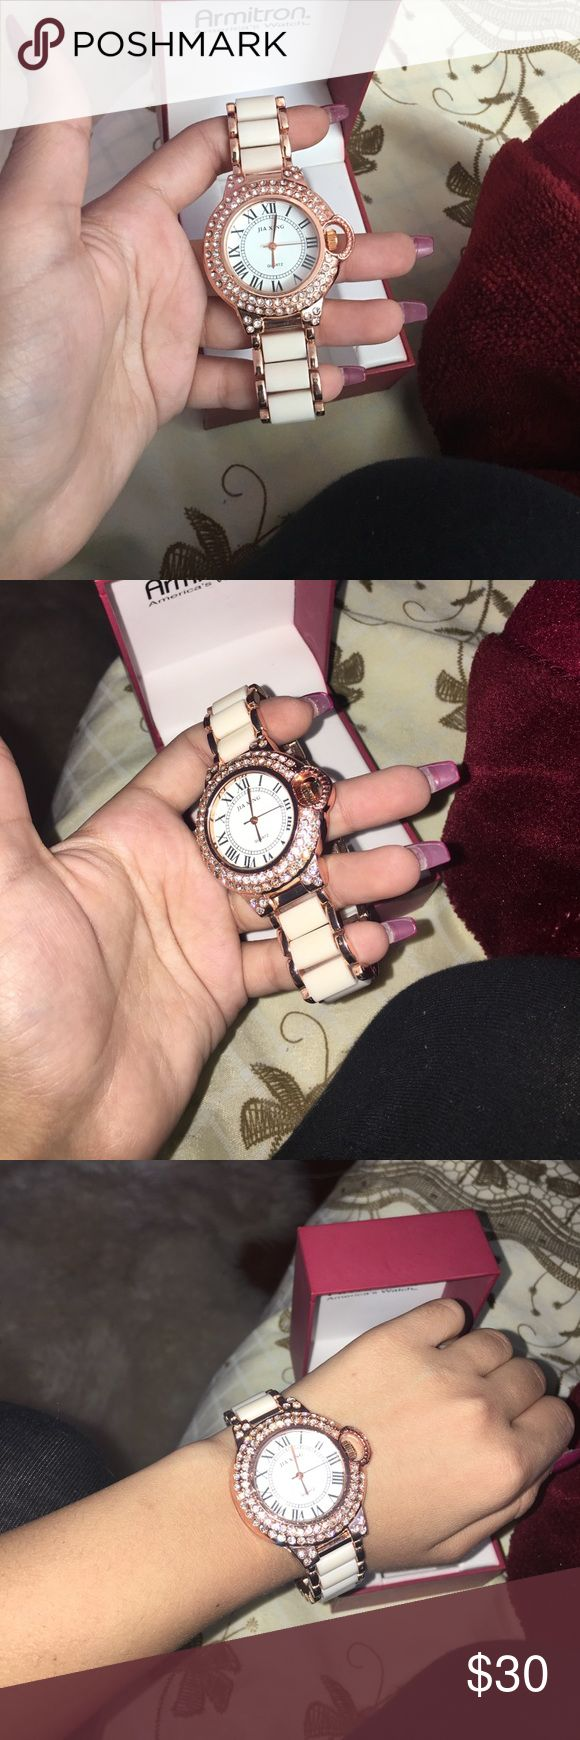 White and gold watch for sale White and gold Armitron watch for ladies brand new Armitron Accessories Watches